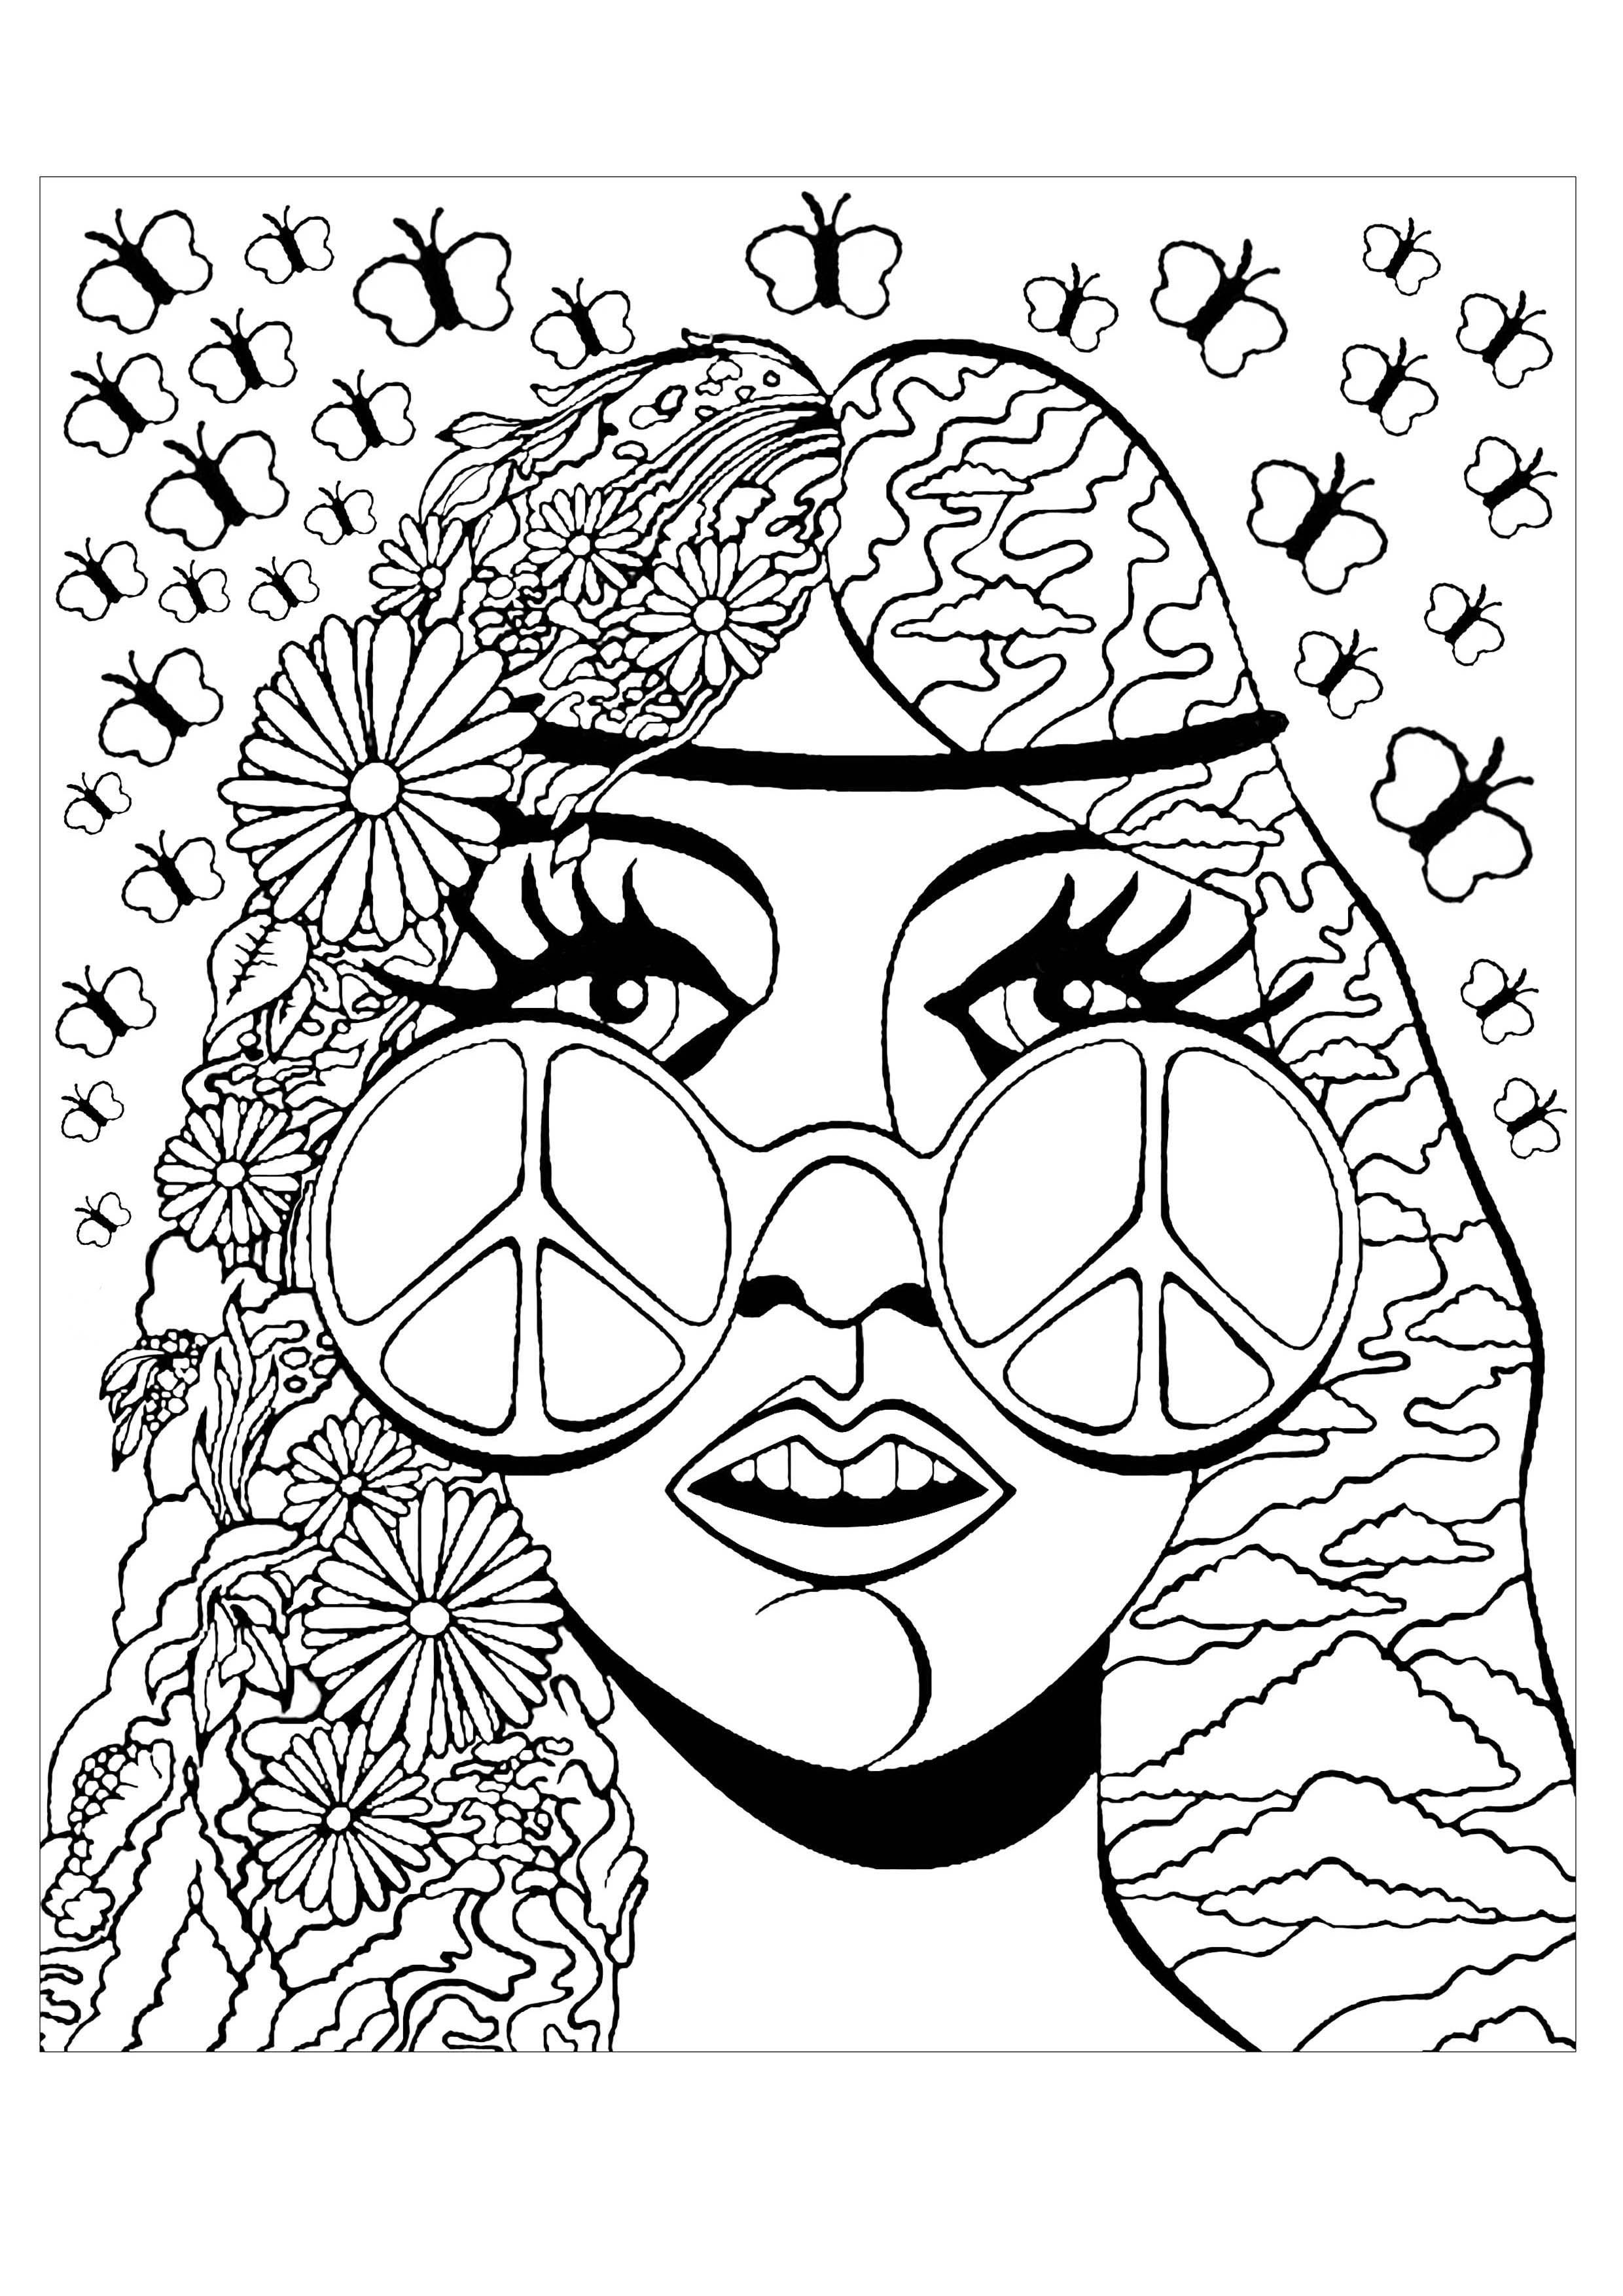 coloring pages for adults trippy get this hard trippy coloring pages free for adults av6c5 pages trippy coloring adults for